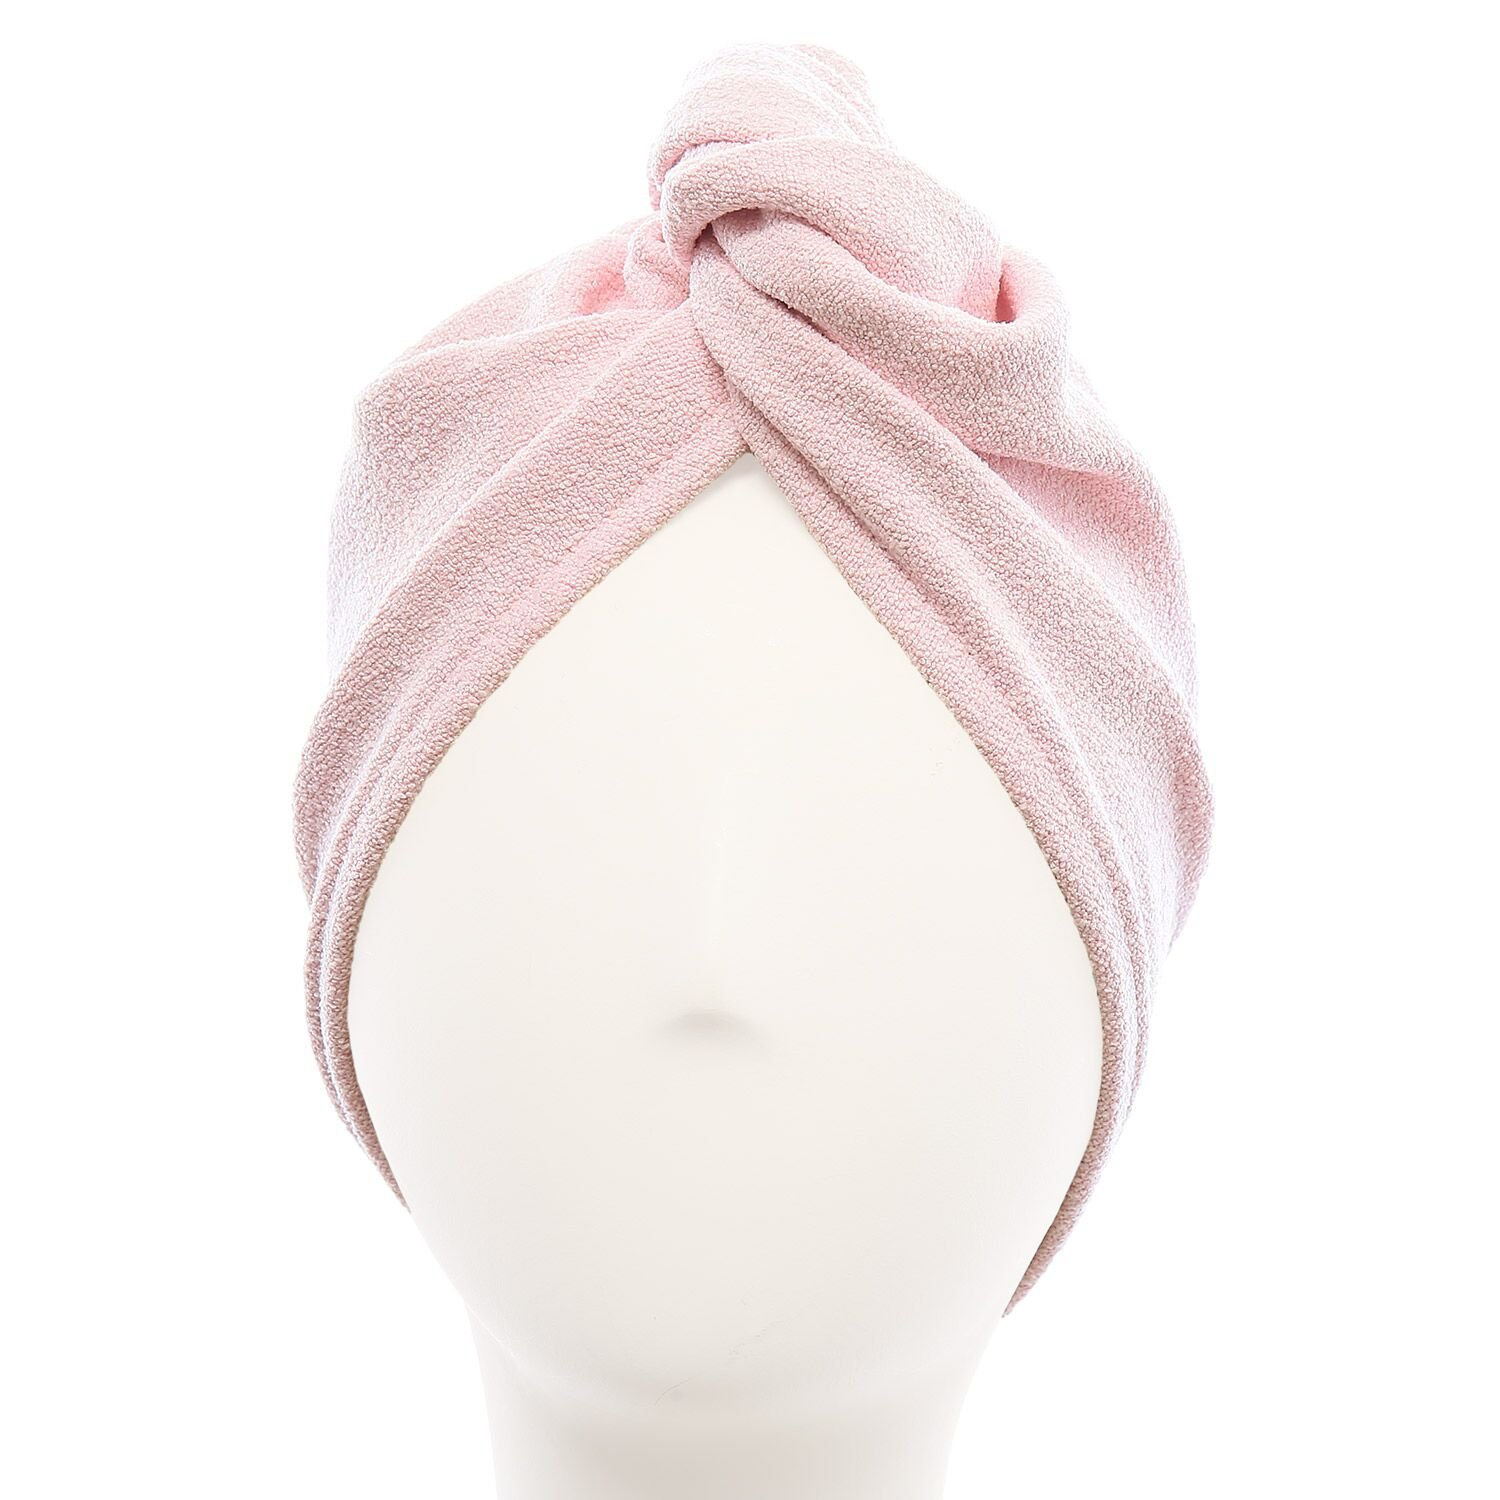 Aquis - Original Hair TURBAN, Patented Perfect Hands-Free Microfiber Hair Drying, Soft Pink (10 x 26 Inches)